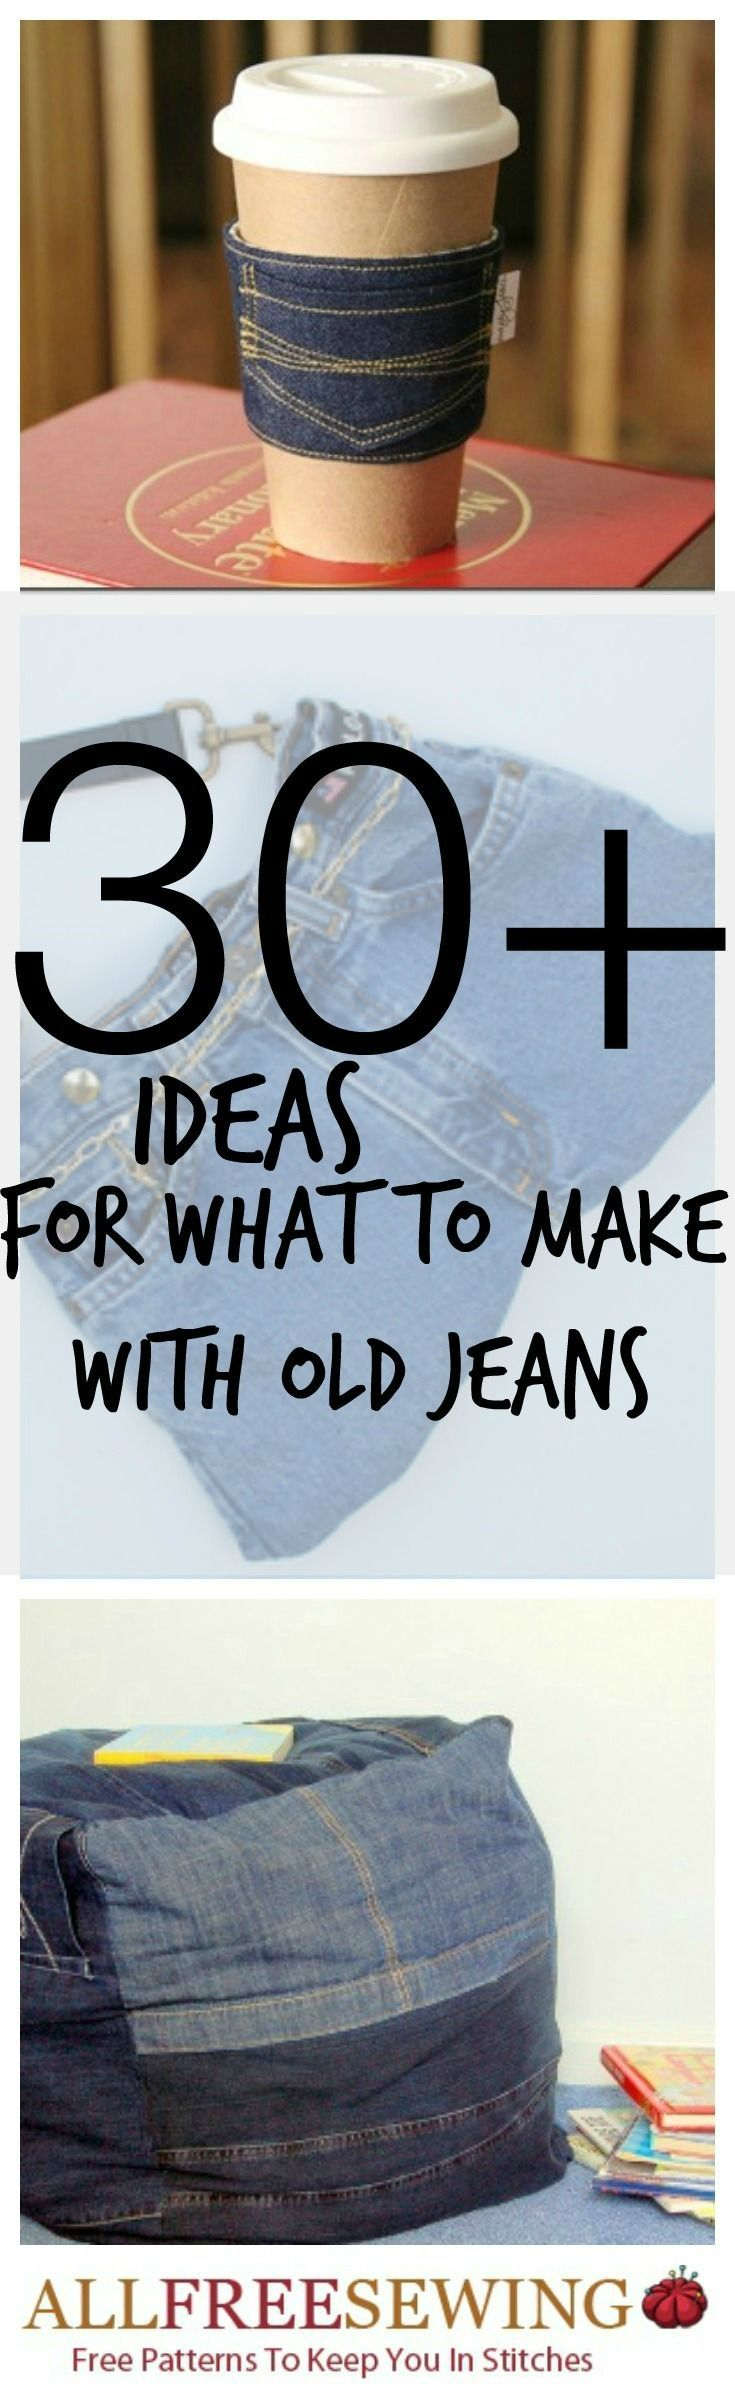 40 Ideas for What to Make with Old Jeans…